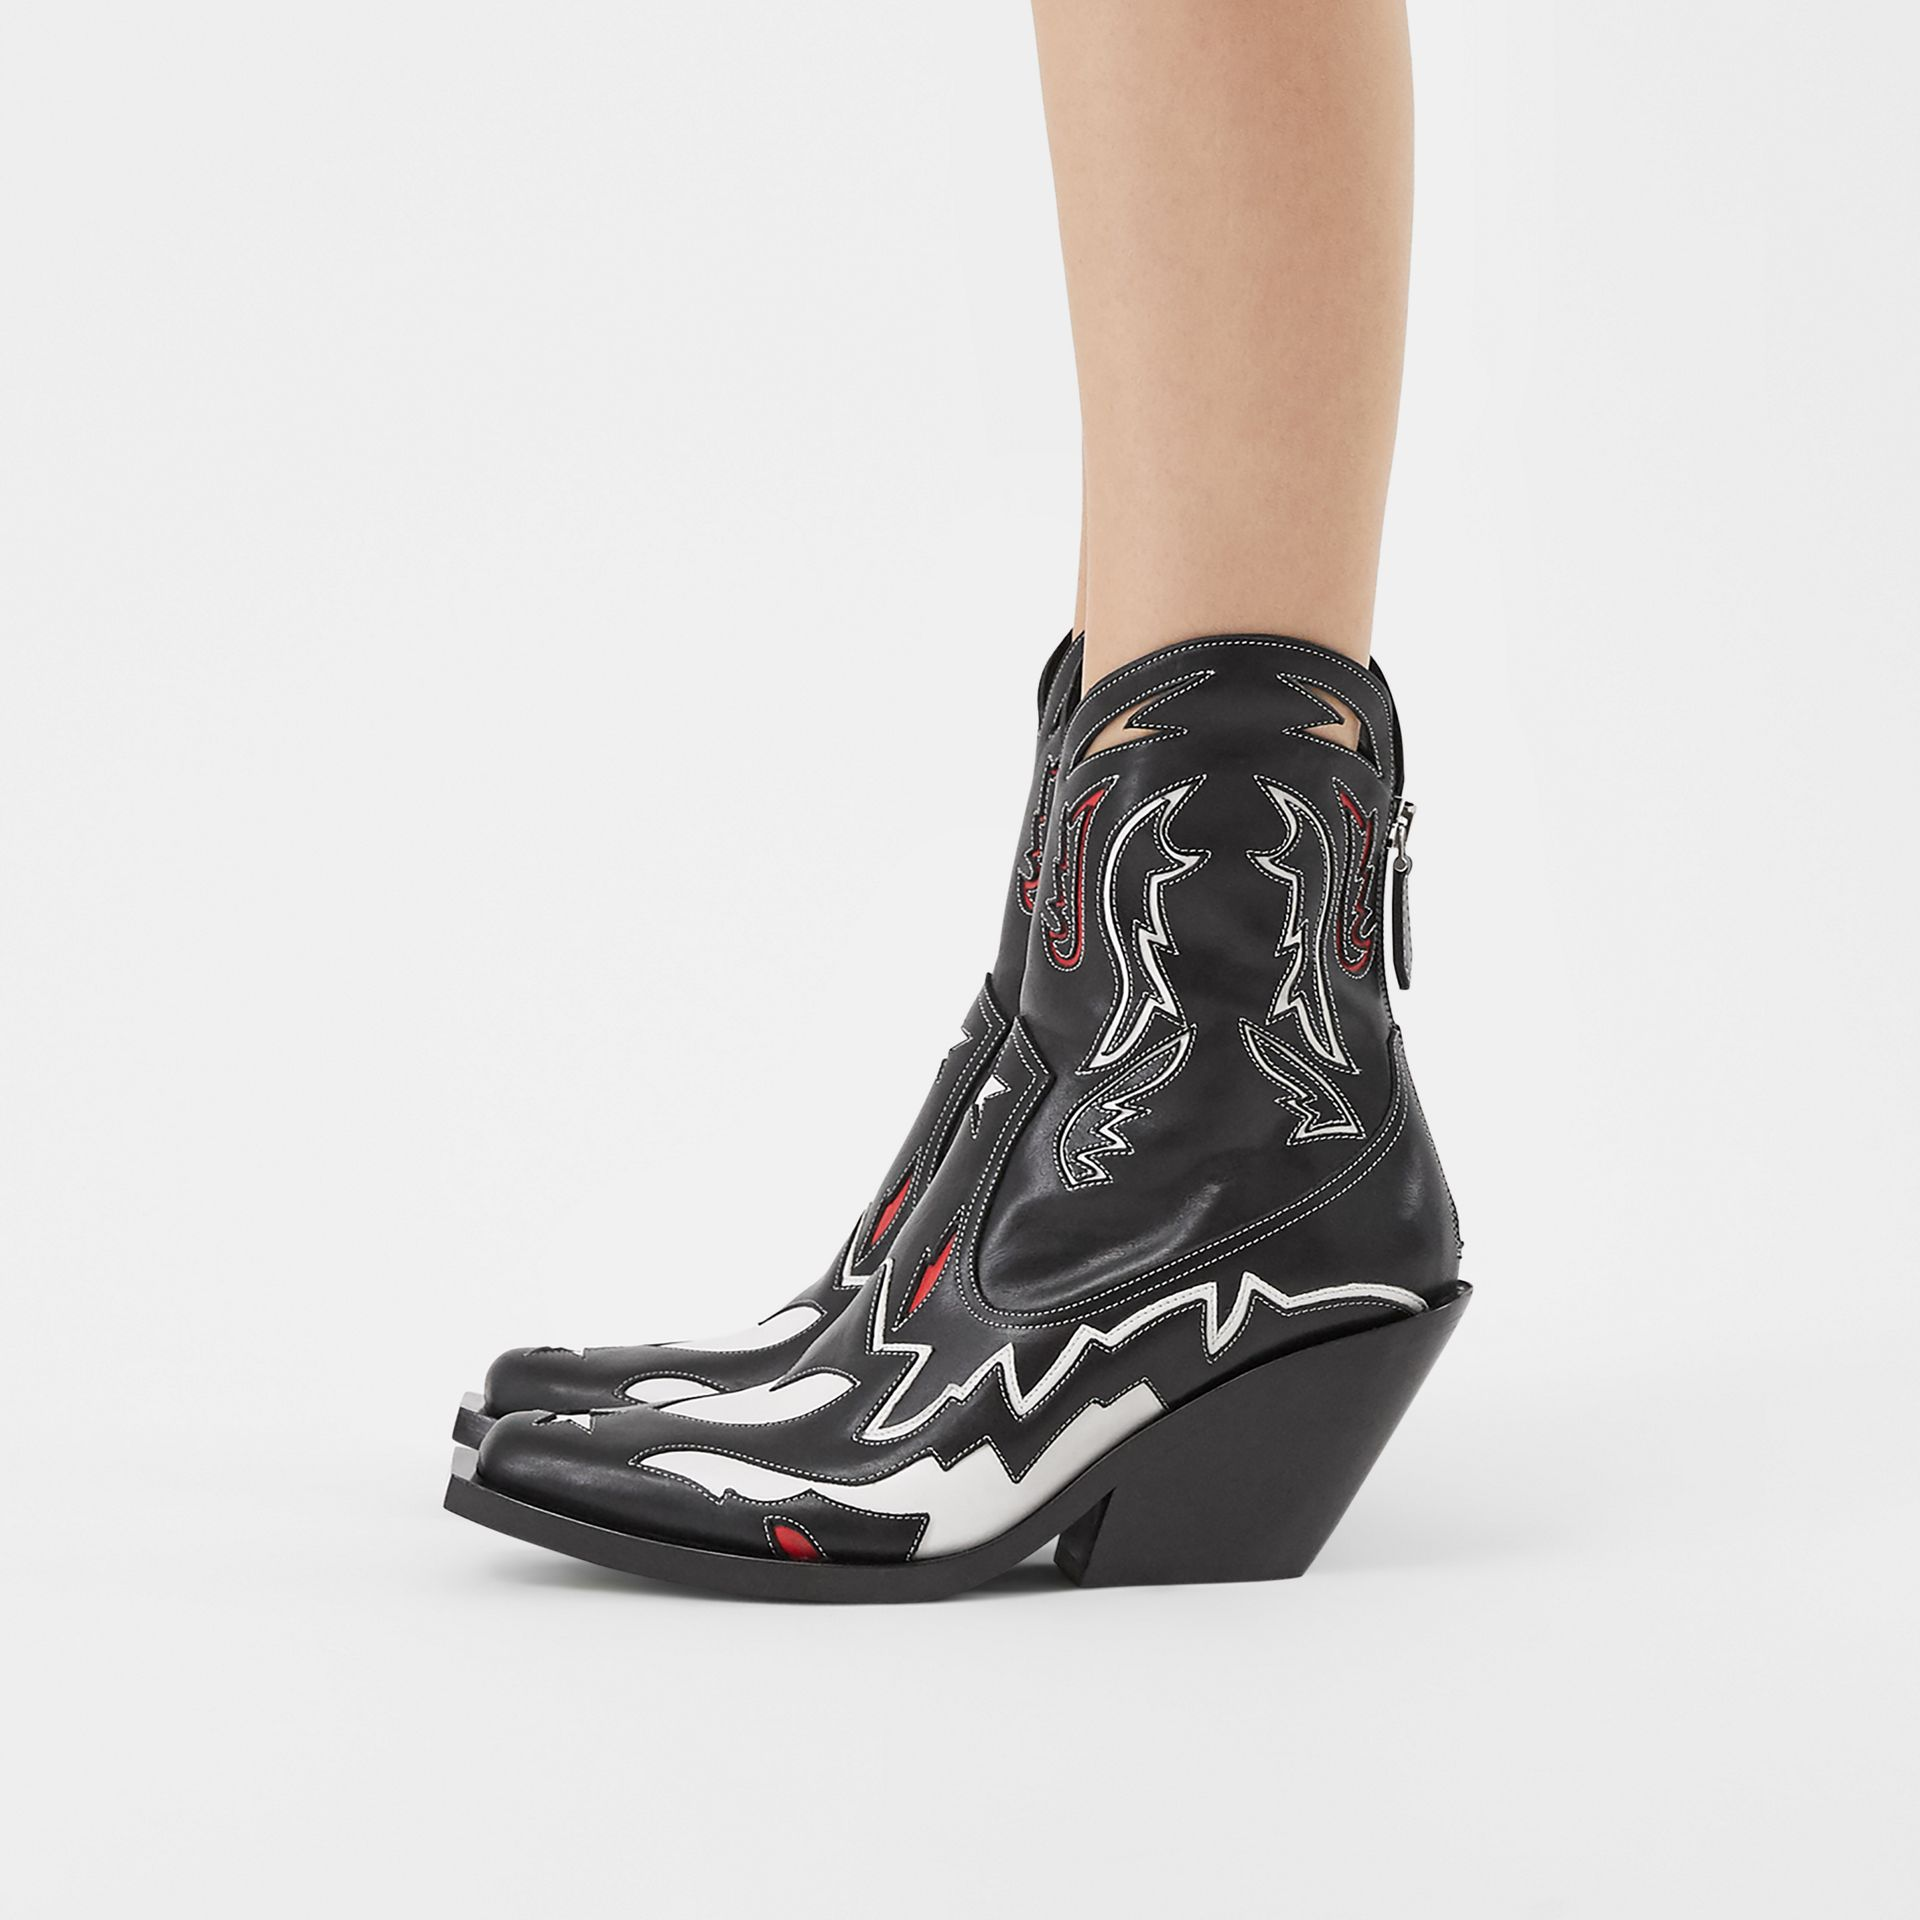 Topstitch Appliqué Leather Boots in Black/white - Women | Burberry - gallery image 2